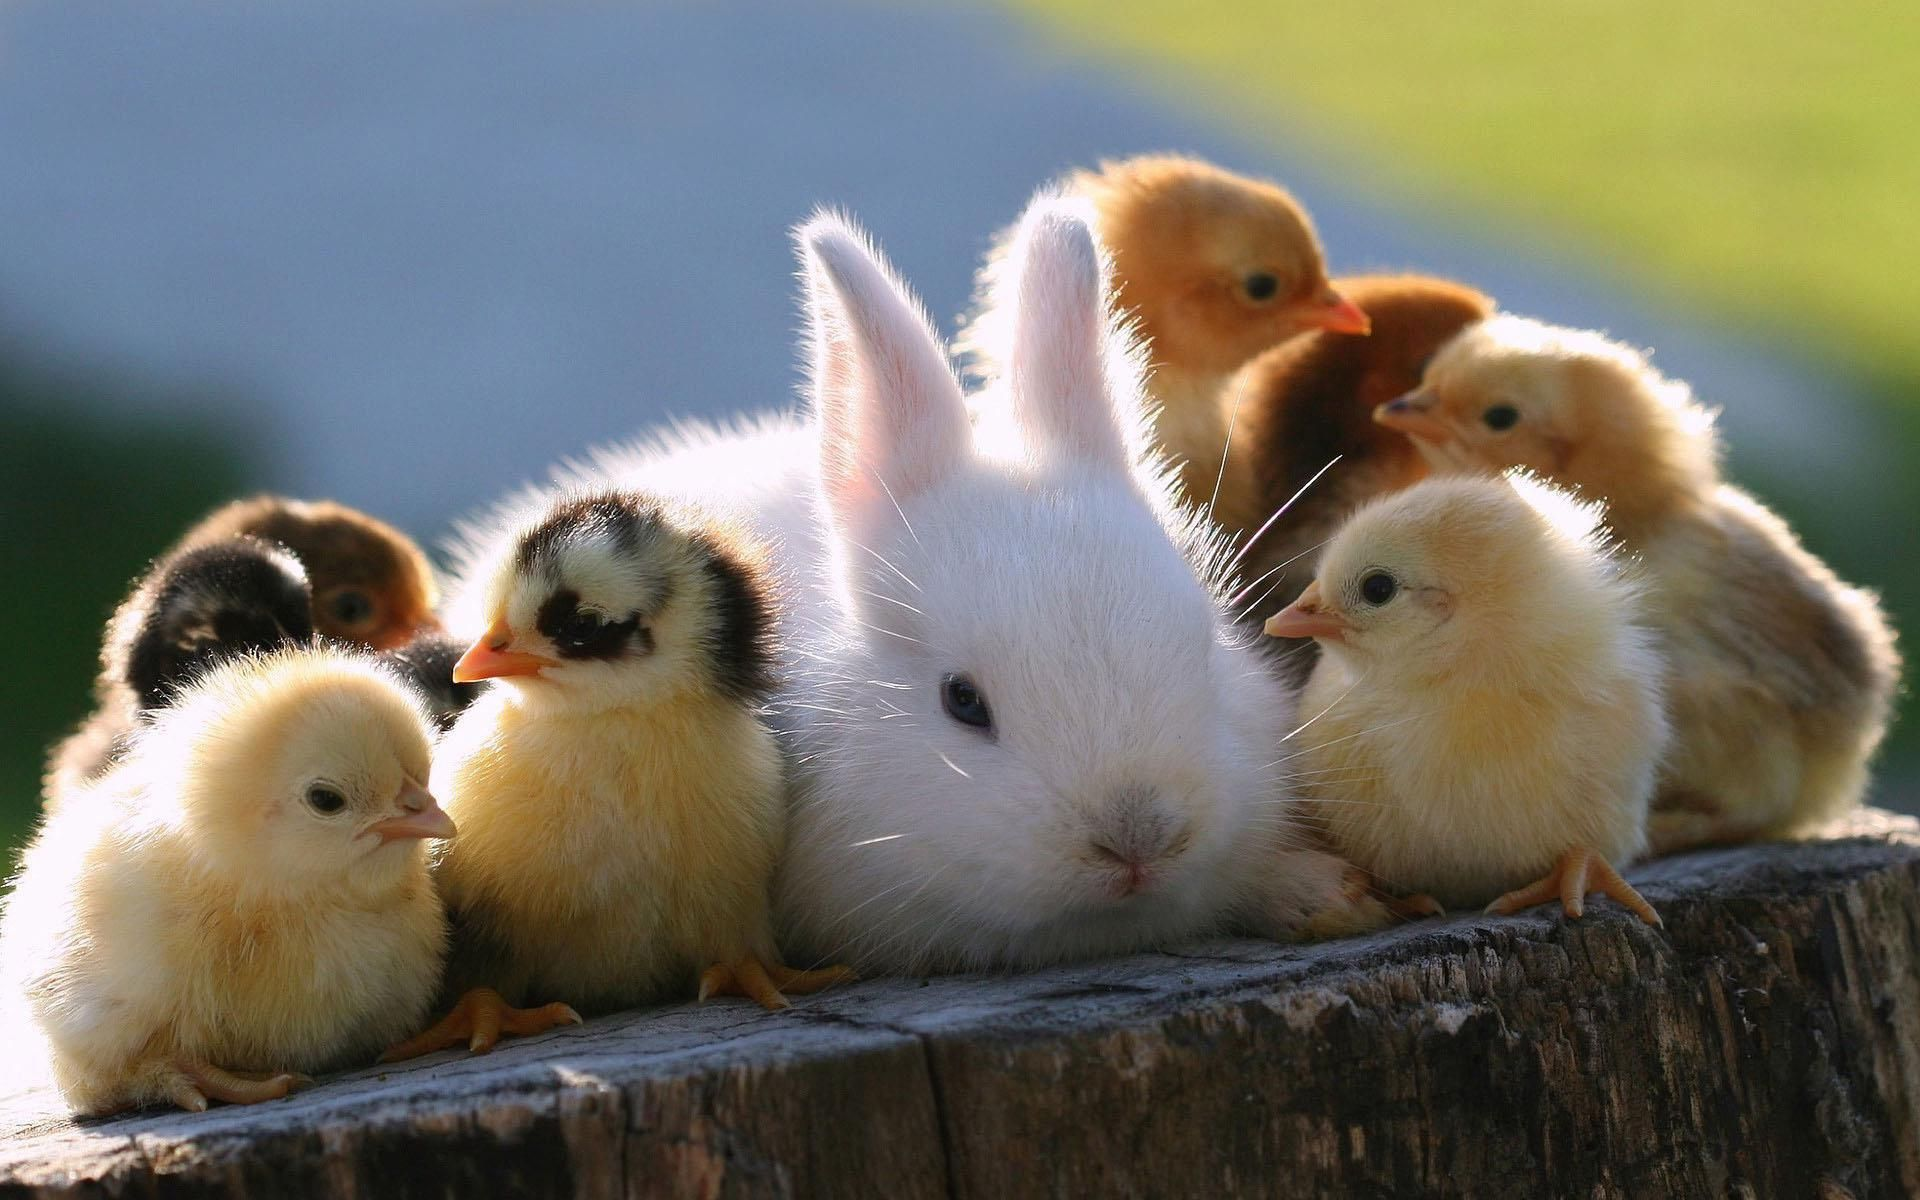 animals too cute | Cute animals Wallpapers Pictures Photos Images